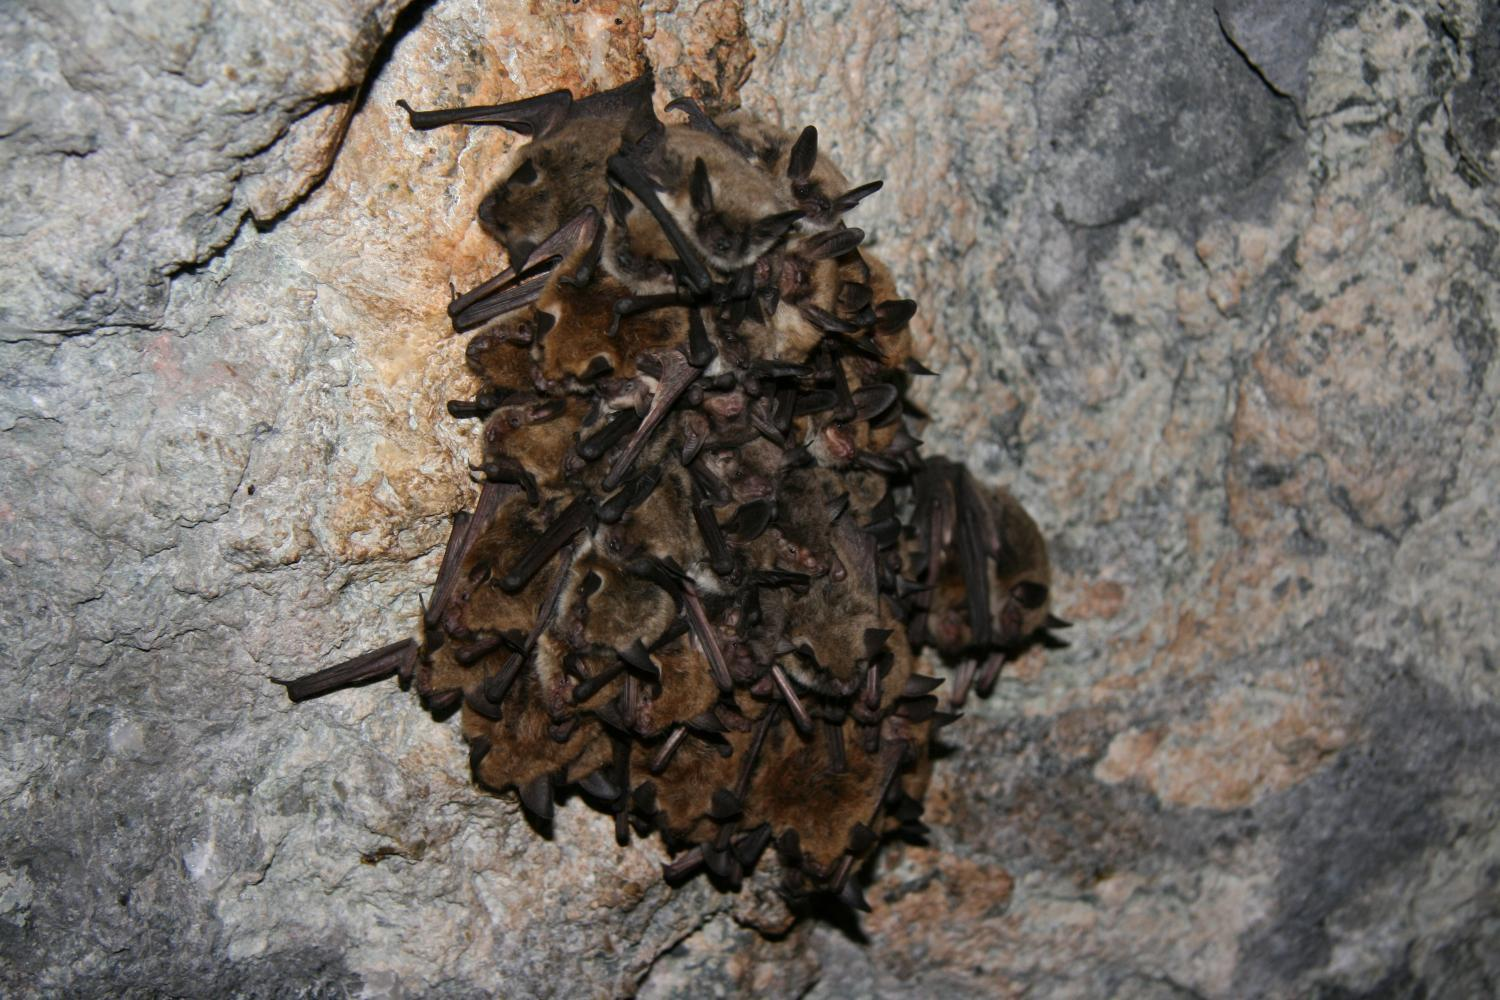 a cluster of cave and fringed myotis (Myotis velifer, Myotis thysanodes) bats